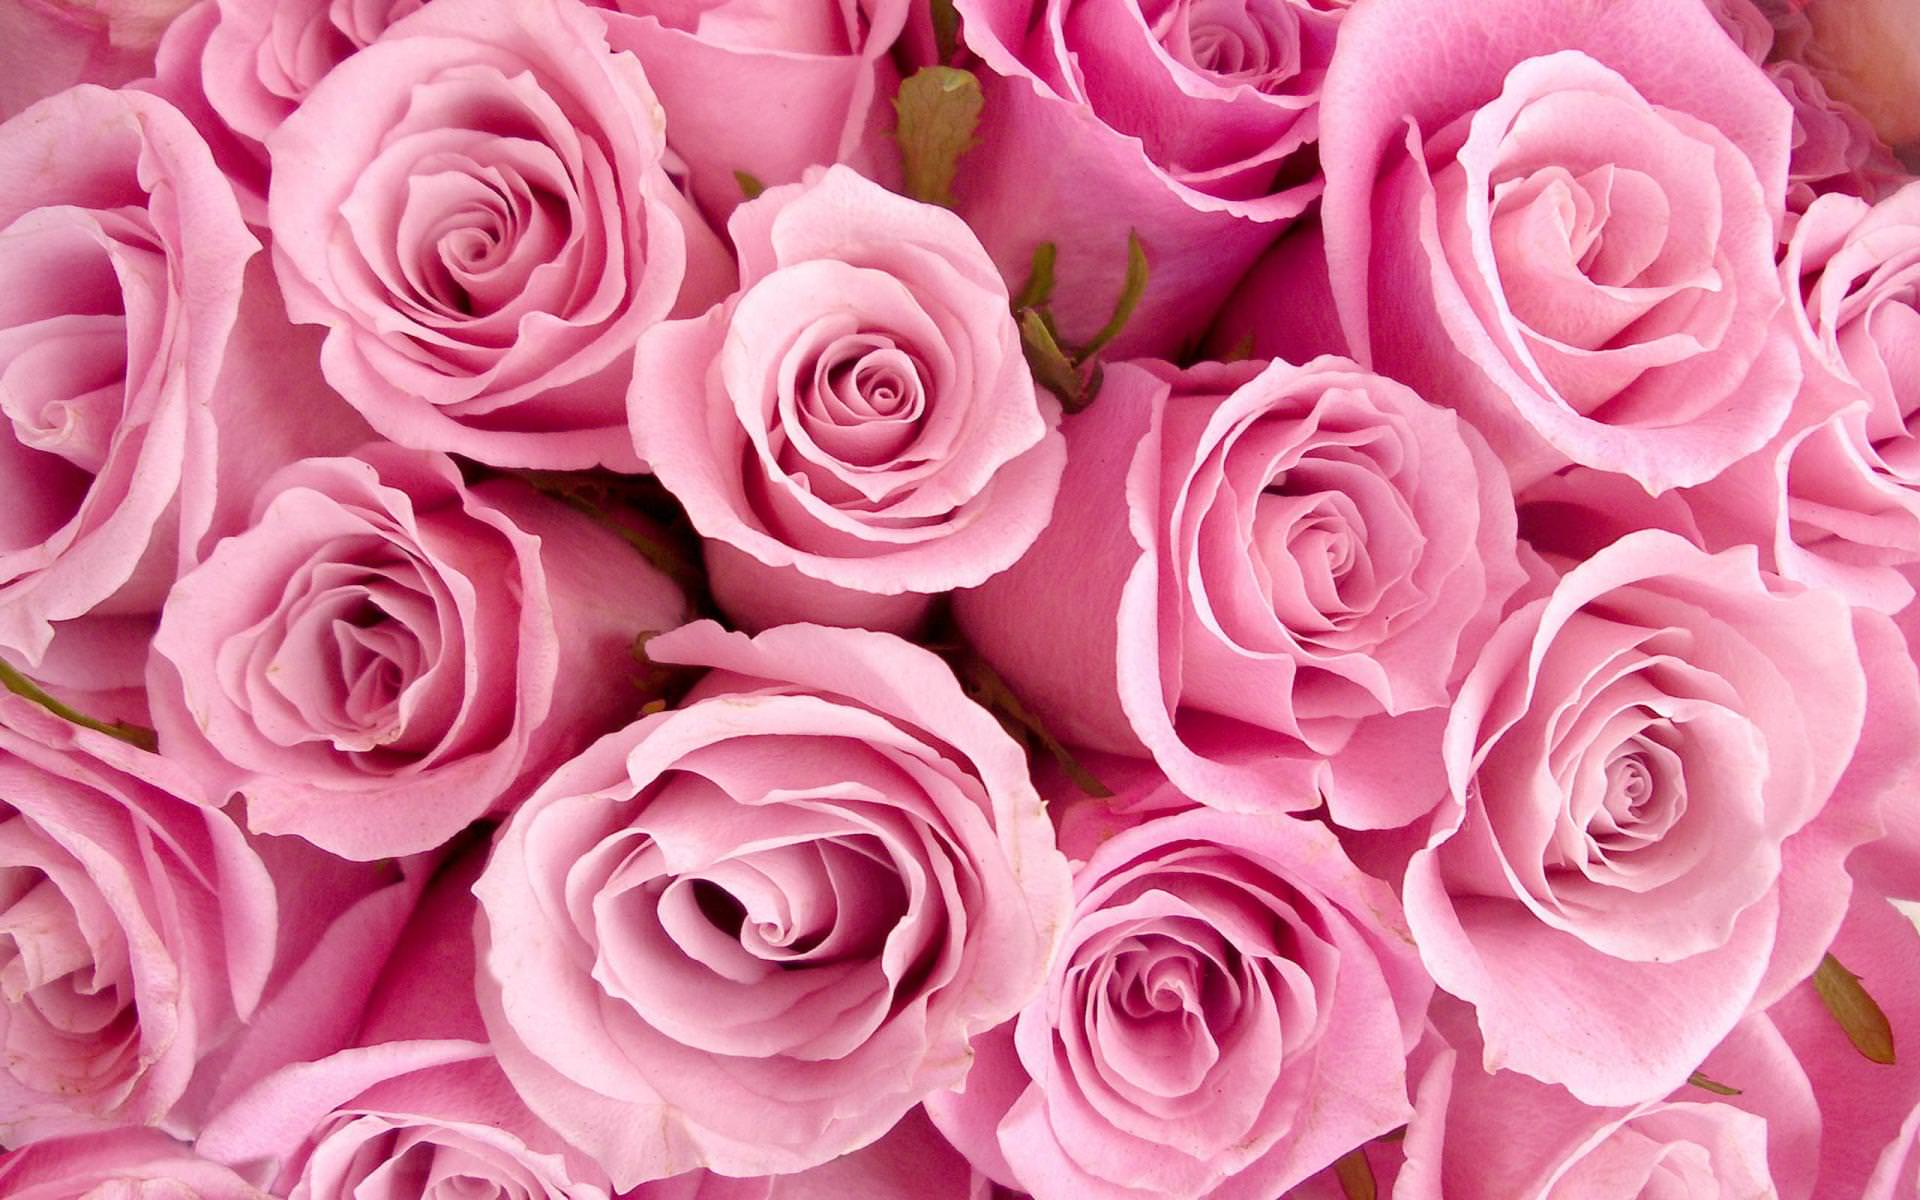 Amazing pink background images design trends premium - Pink rose black background wallpaper ...